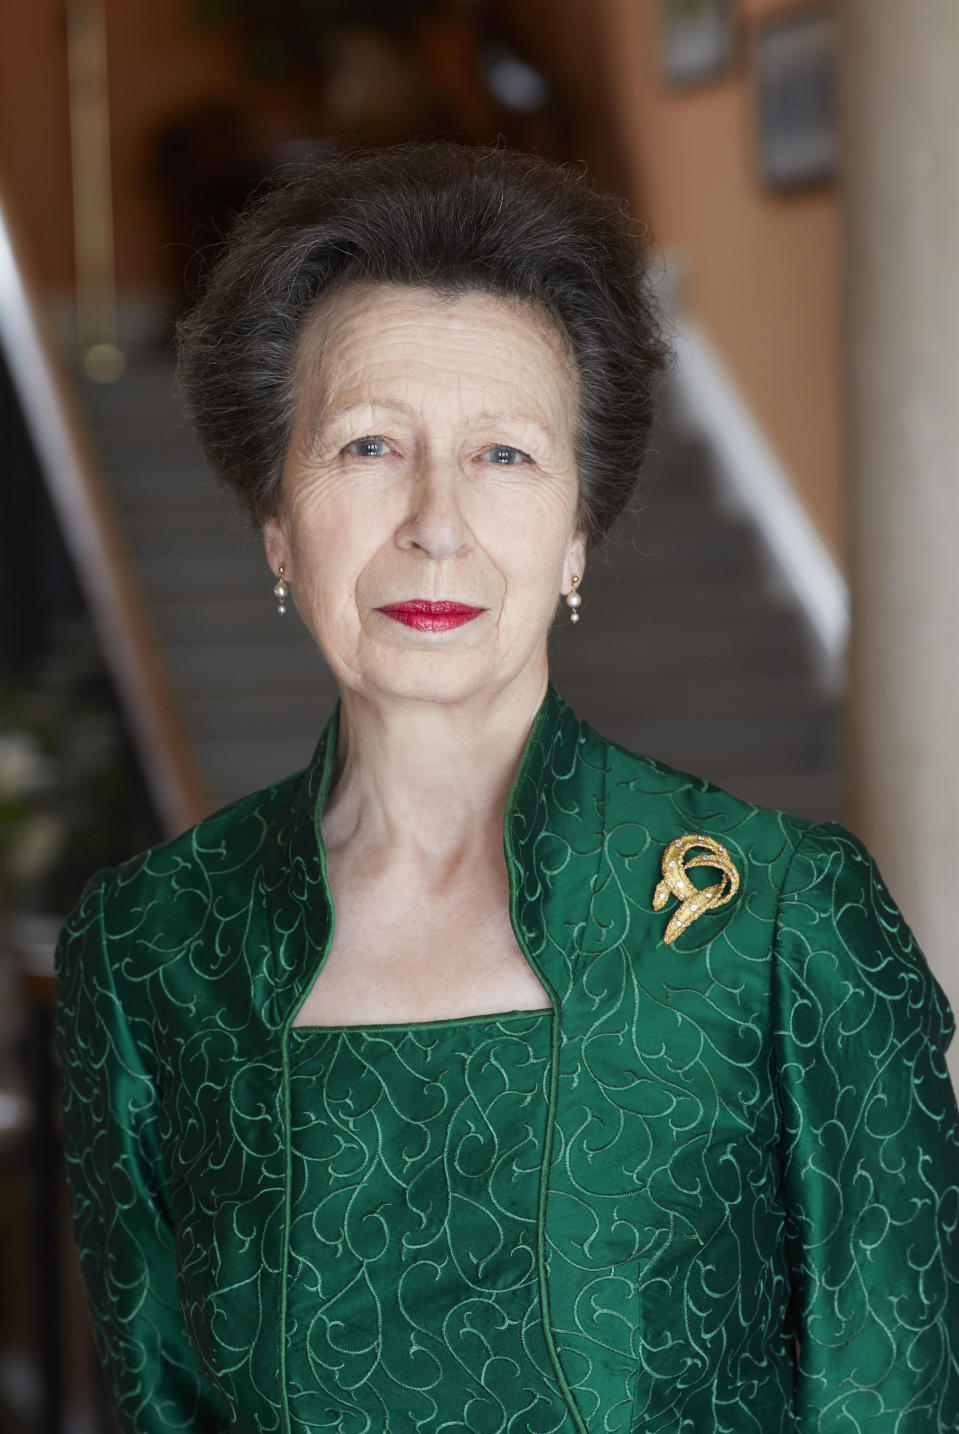 Embargoed to 2200 BST Friday August 14, 2020. Not for use after Friday September 4, 2020, without prior approval from Royal Communications and Camera Press. Mandatory credit: John Swannell / Camera Press One of three official photographs taken by John Swannell of The Princess Royal which have been released to celebrate her 70th birthday on Saturday.